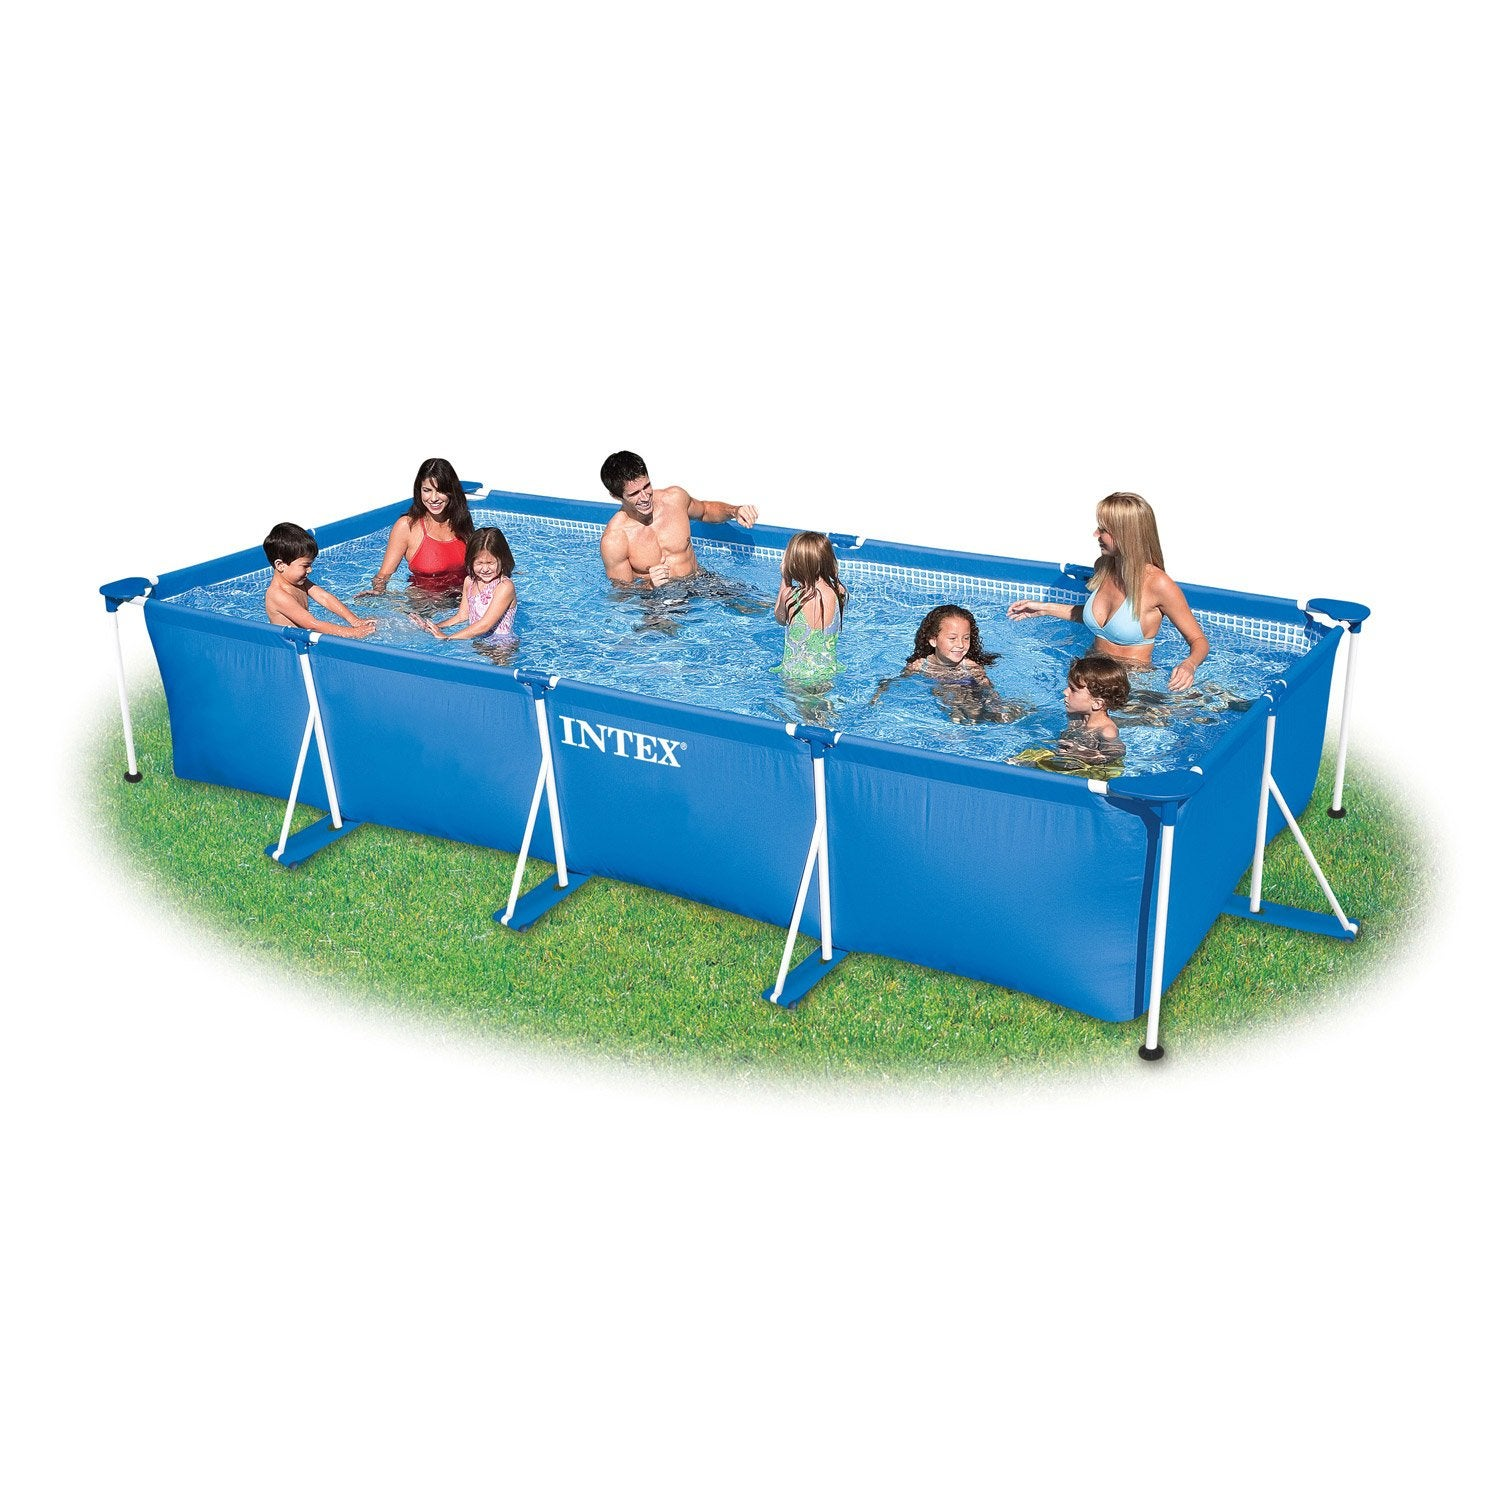 Piscine hors sol autoportante tubulaire intex l x l for Piscine hors sol hauteur 1m50